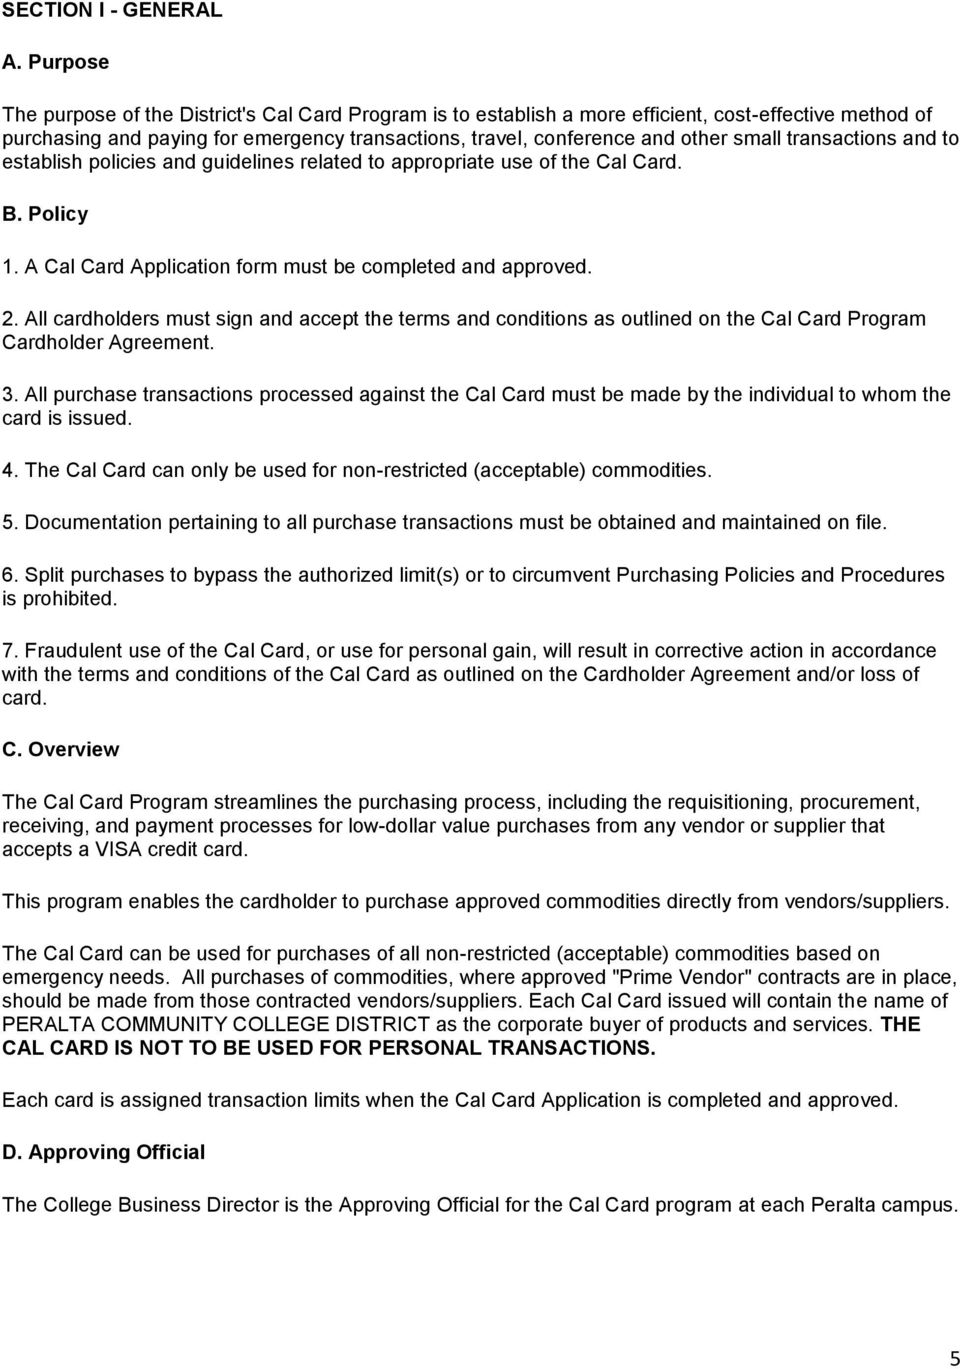 transactions and to establish policies and guidelines related to appropriate use of the Cal Card. B. Policy 1. A Cal Card Application form must be completed and approved. 2.